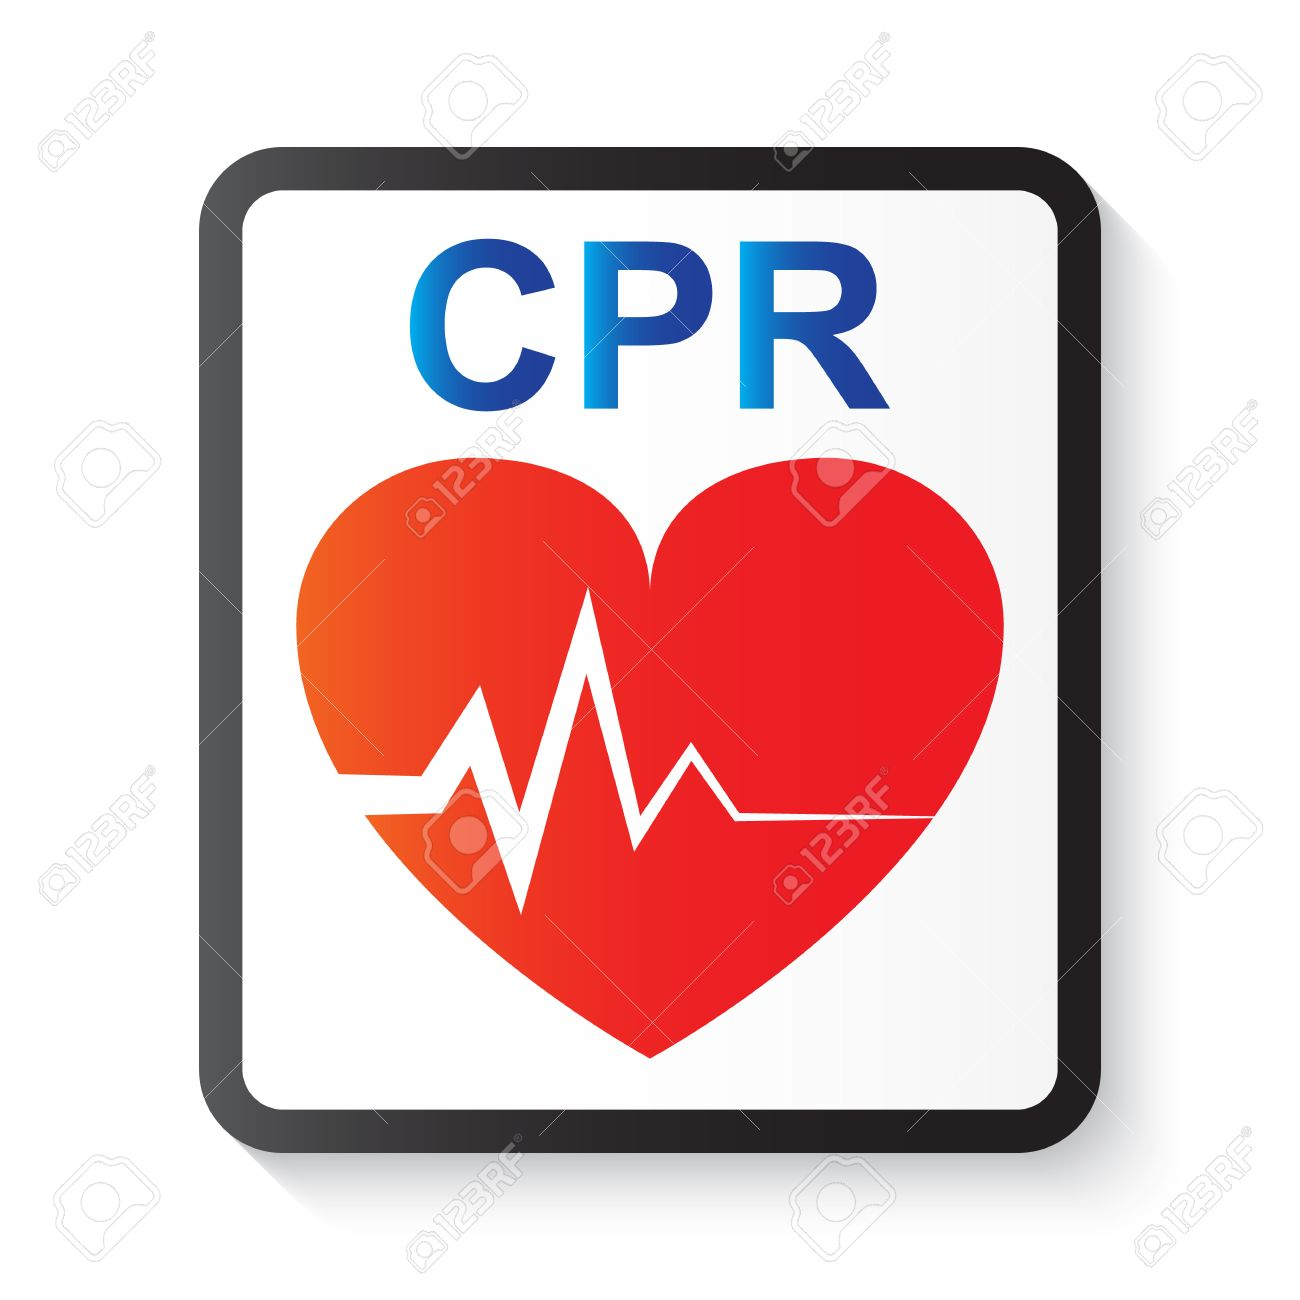 CPR ( cardiopulmonary resuscitation ) , heart and ECG ( Electrocardiogram ) ( image for basic life support and advanced cardiac life support ) - 55067907